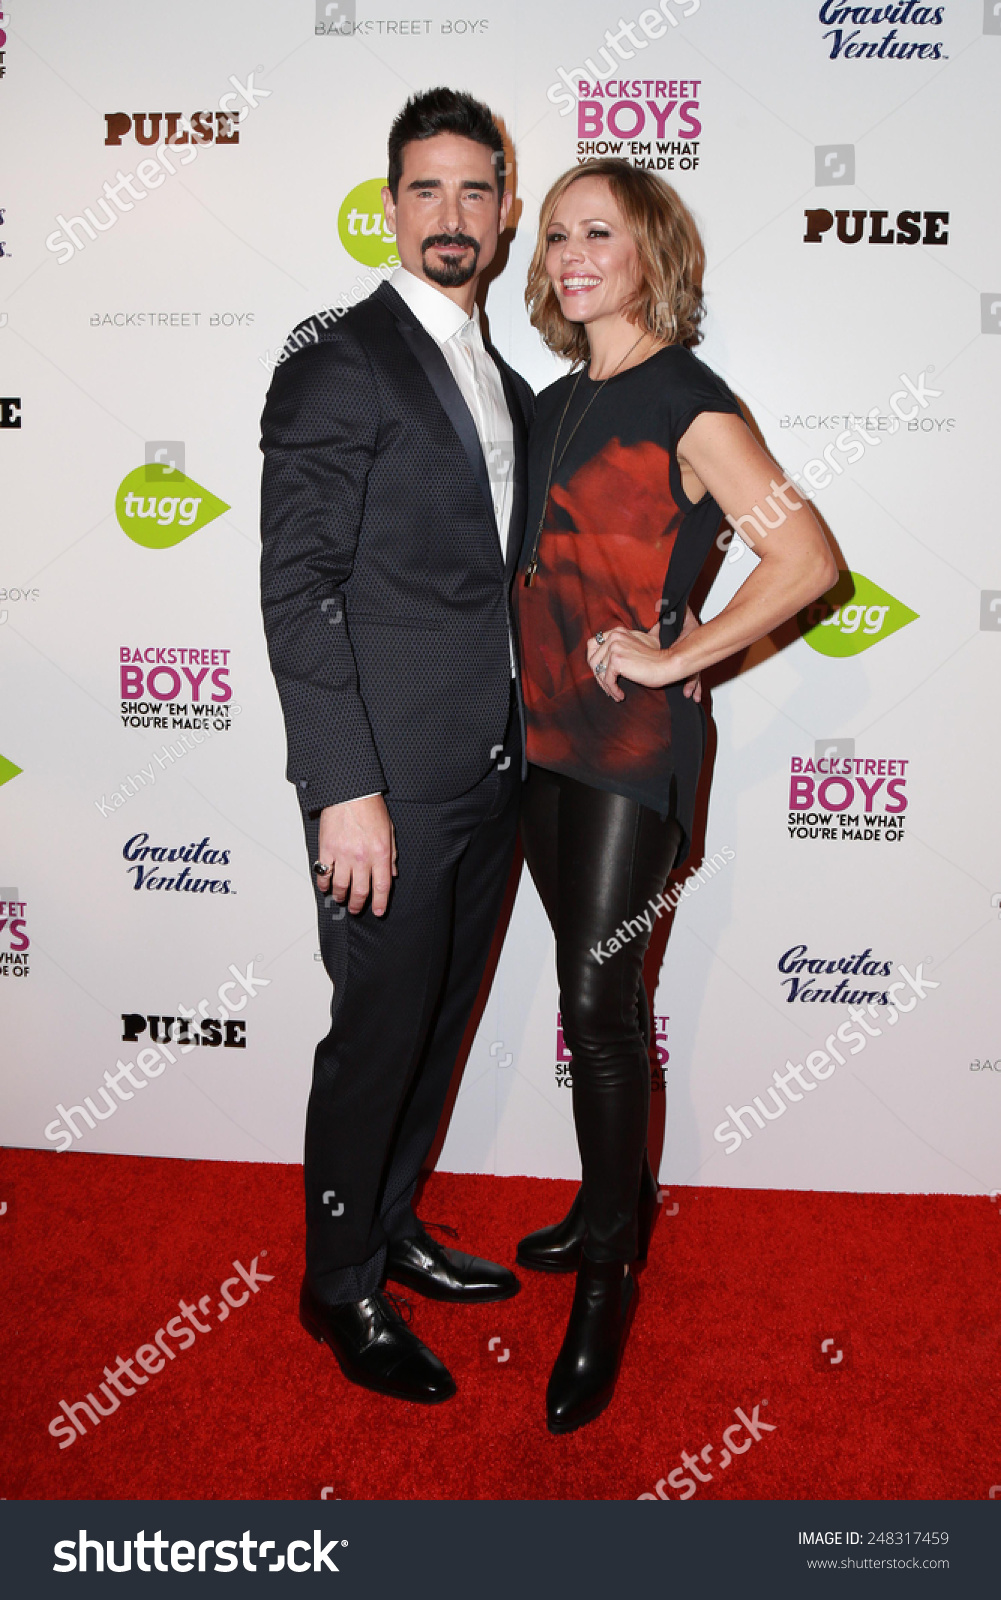 Los Angeles Jan 29 Kevin Richardson Stock Photo 248317459 ...